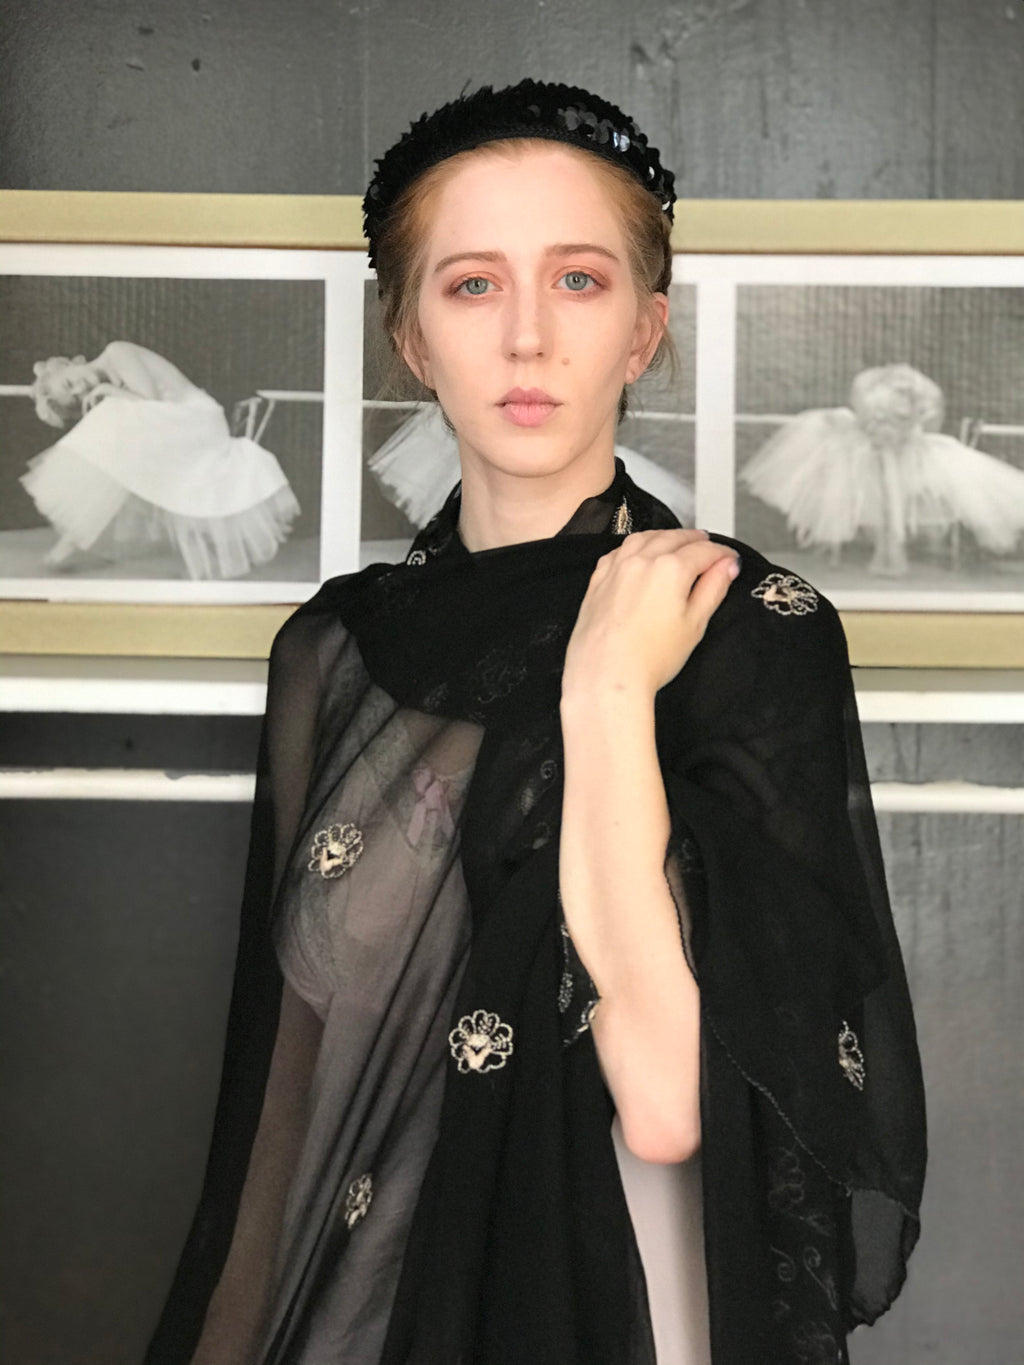 Embroidered Black Sheer Chiffon Scarf